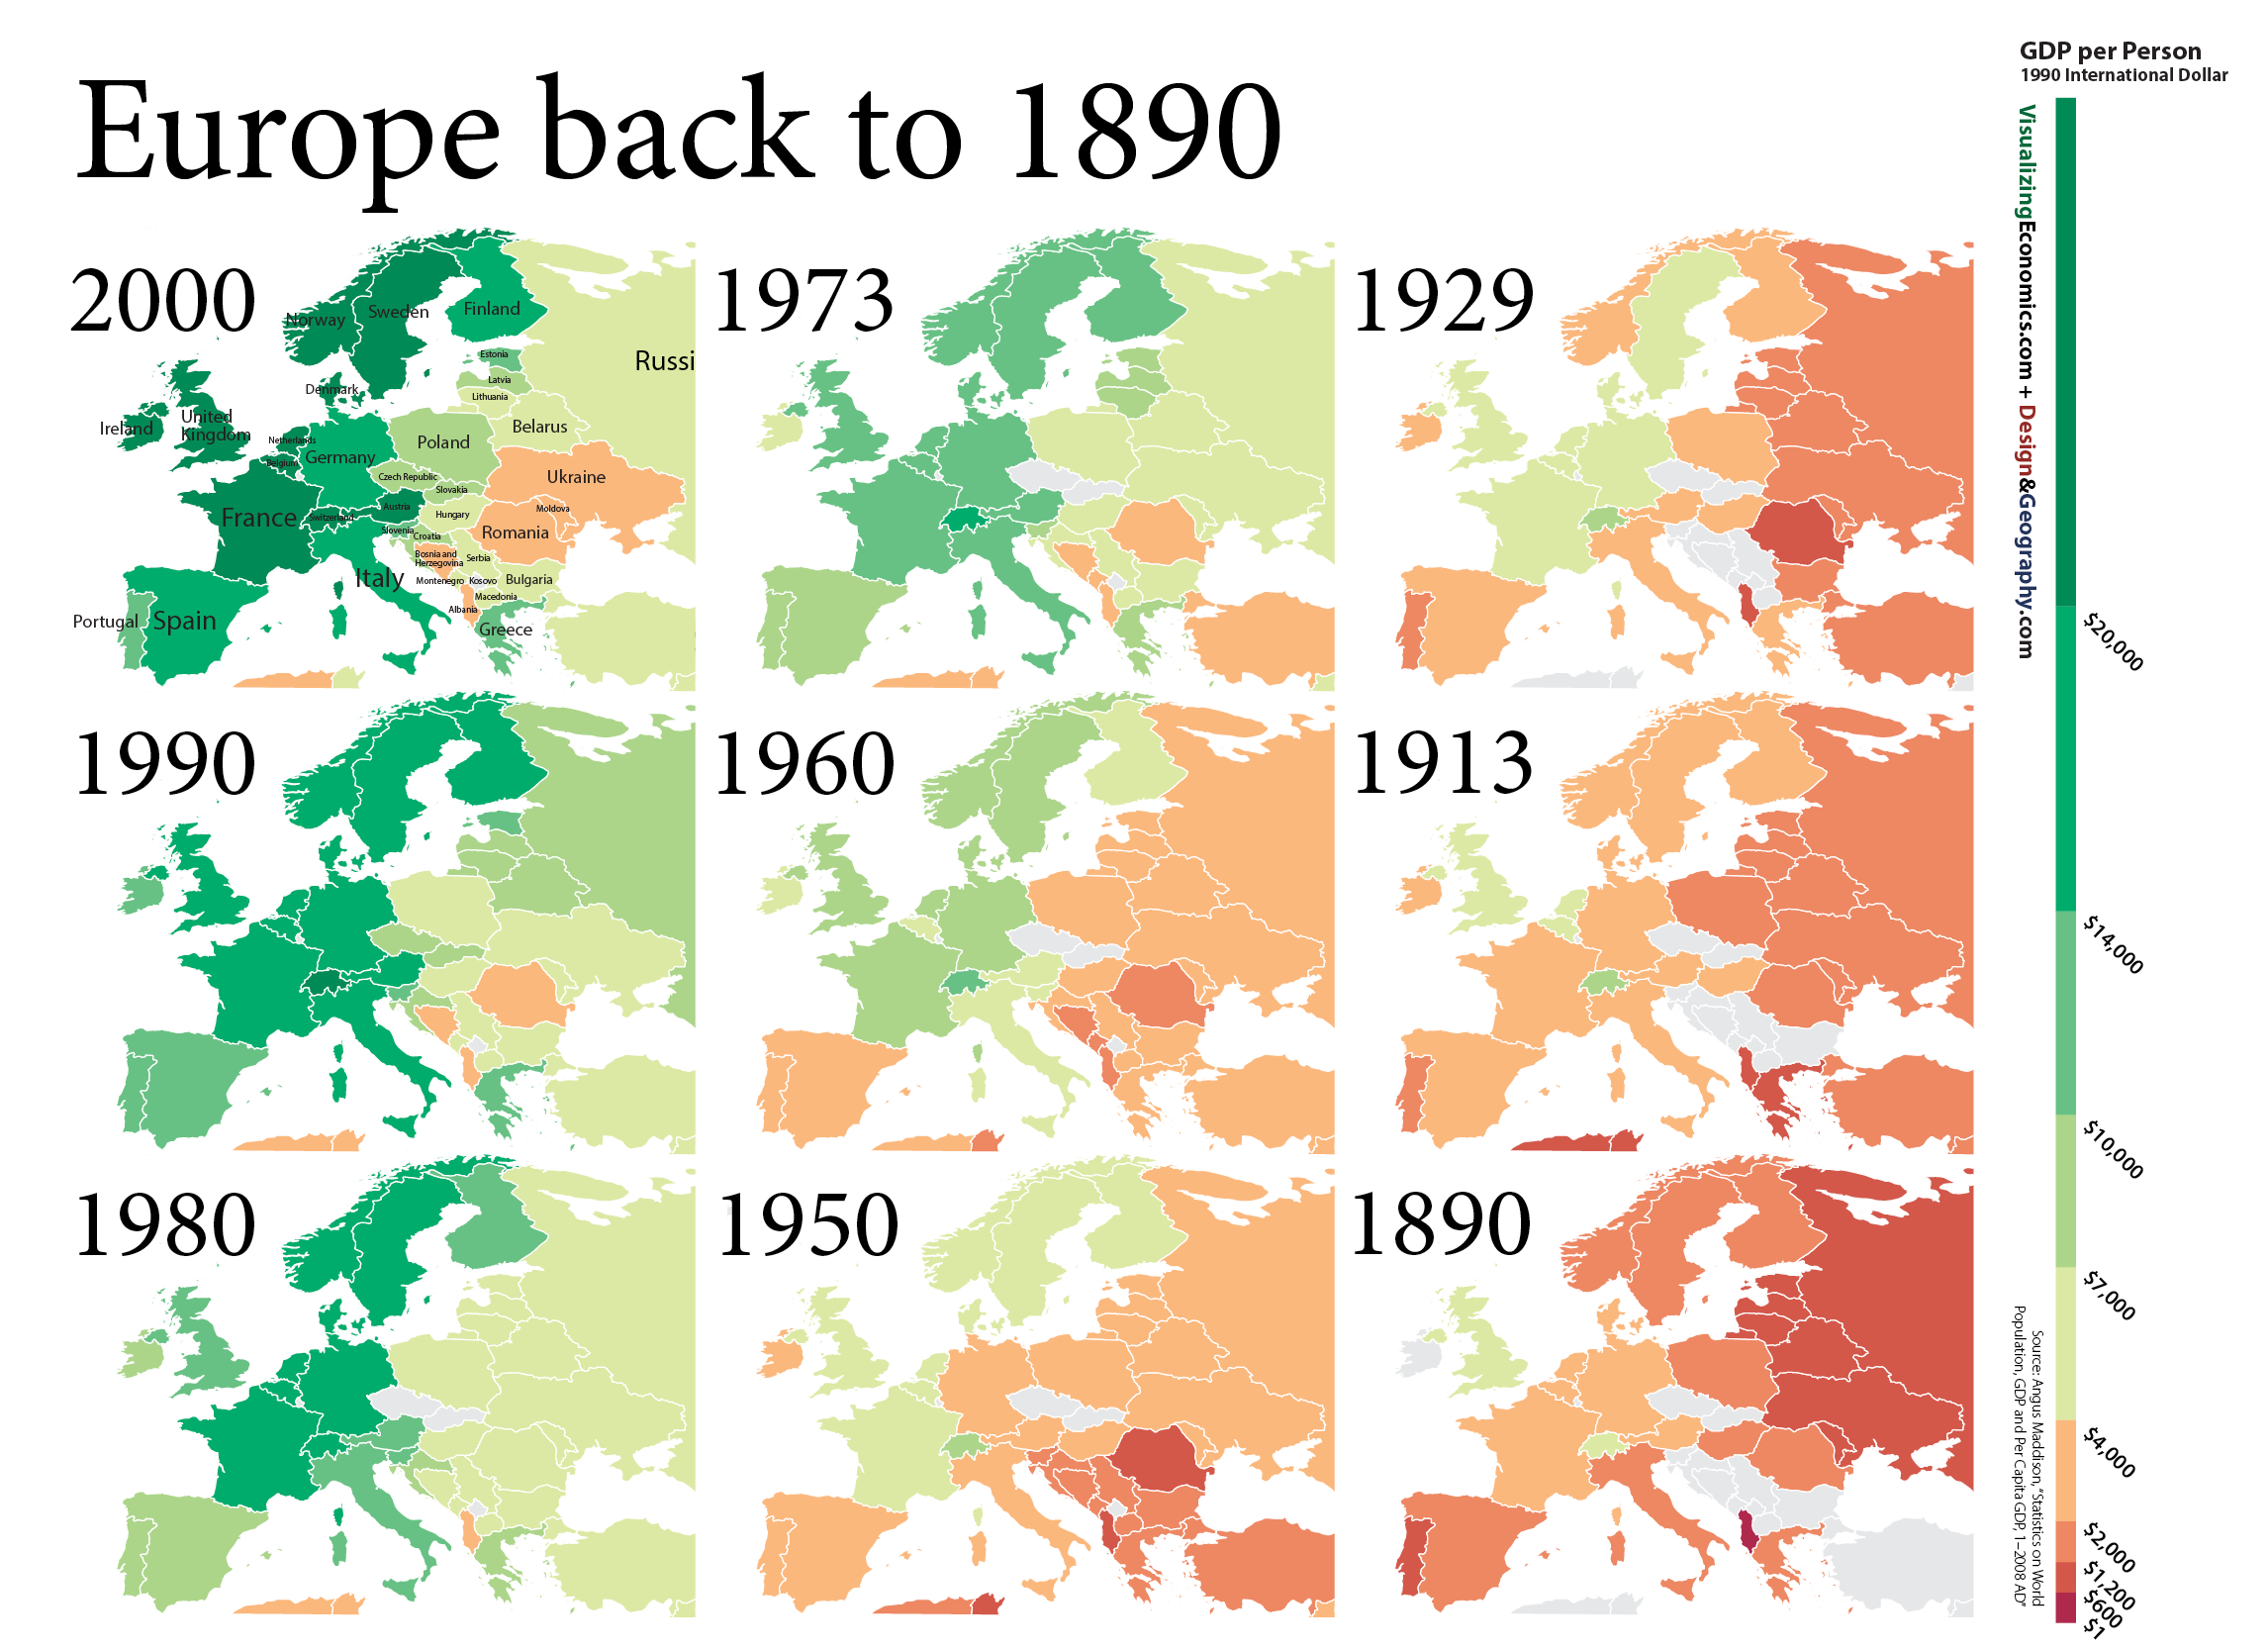 Gdp Per Capita In Europe Back To 1890 Europe